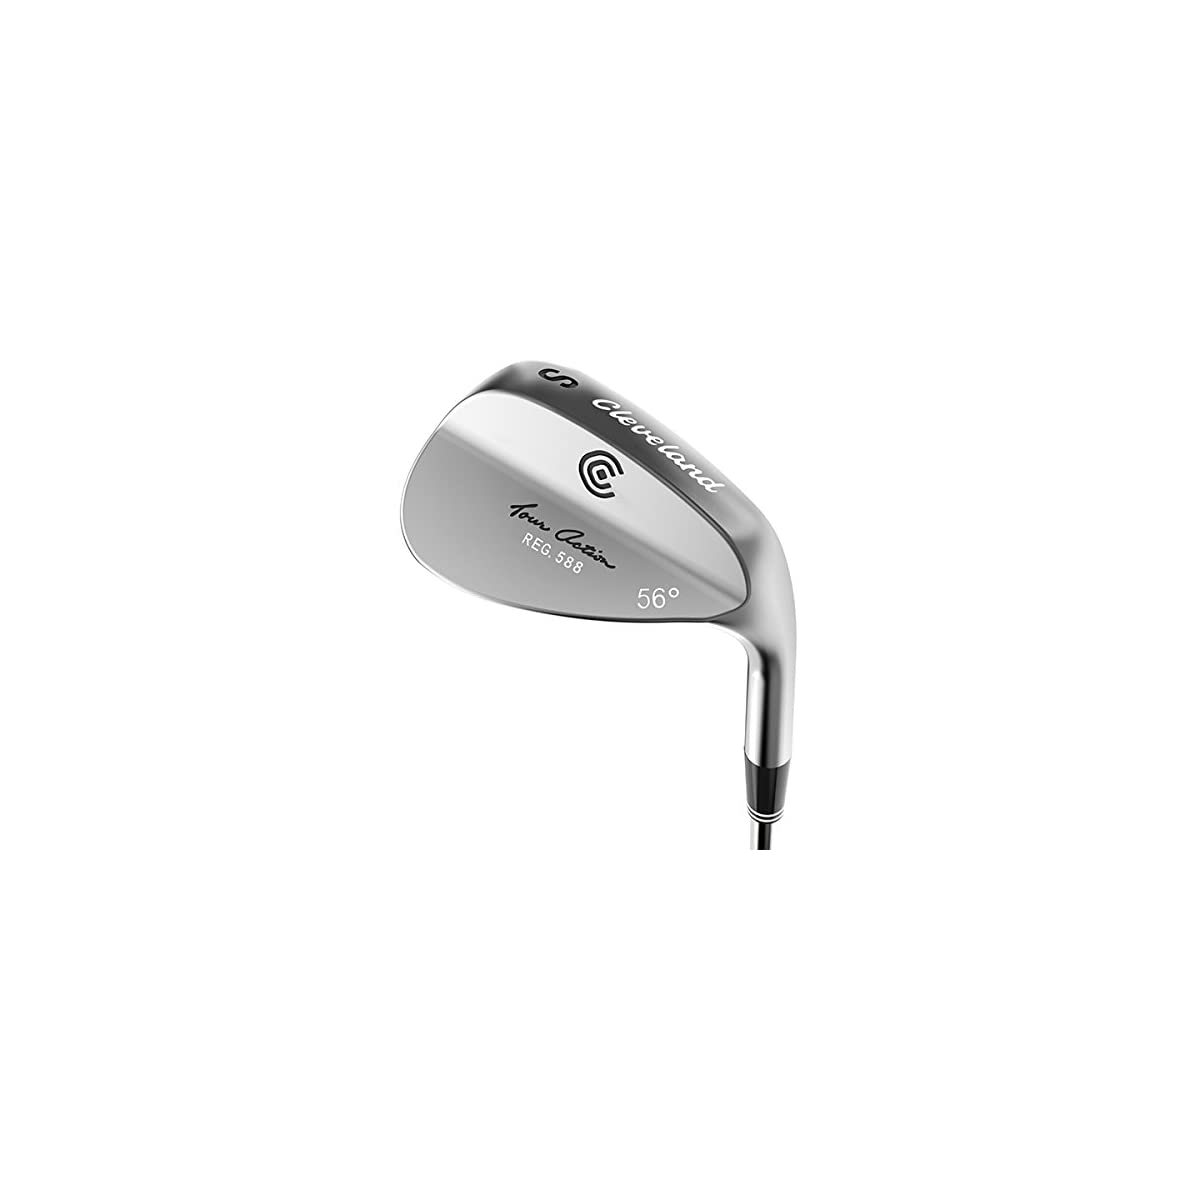 2d1b72cb4fa0 Cleveland Golf 2017 588 Tour Action Wedge | First For Golf